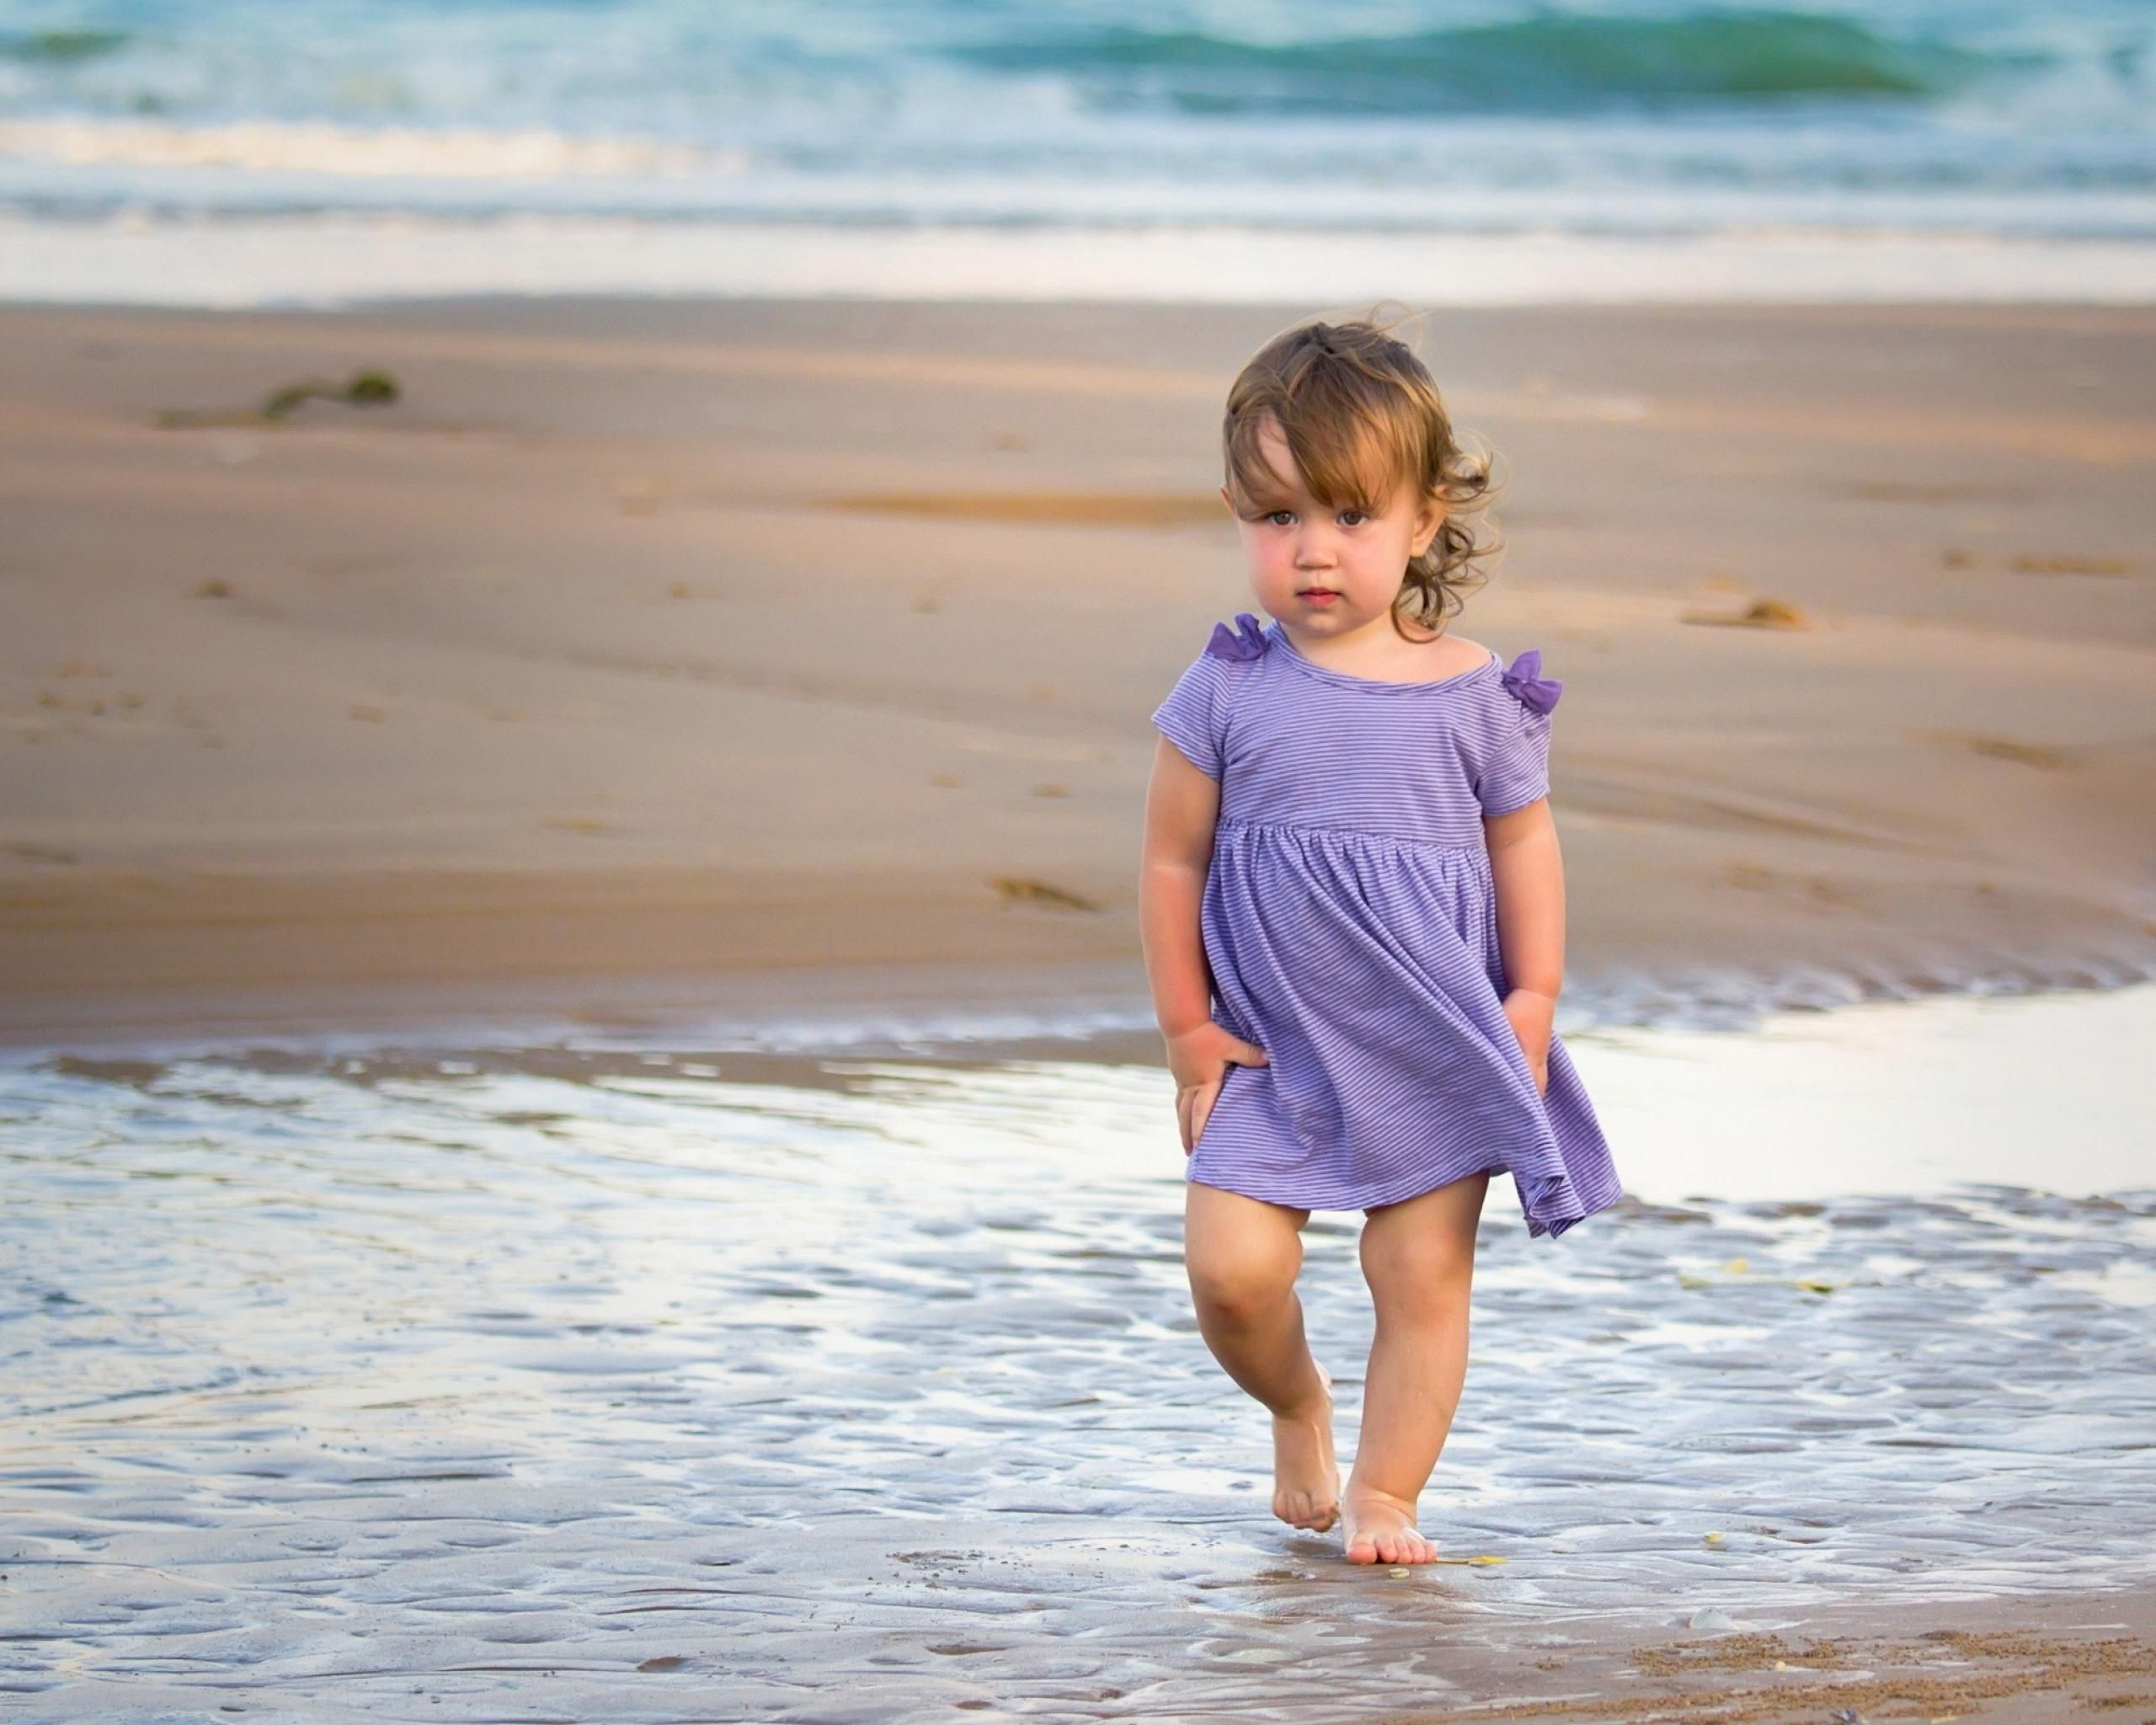 free images of children Free Download Wallpapers Kids